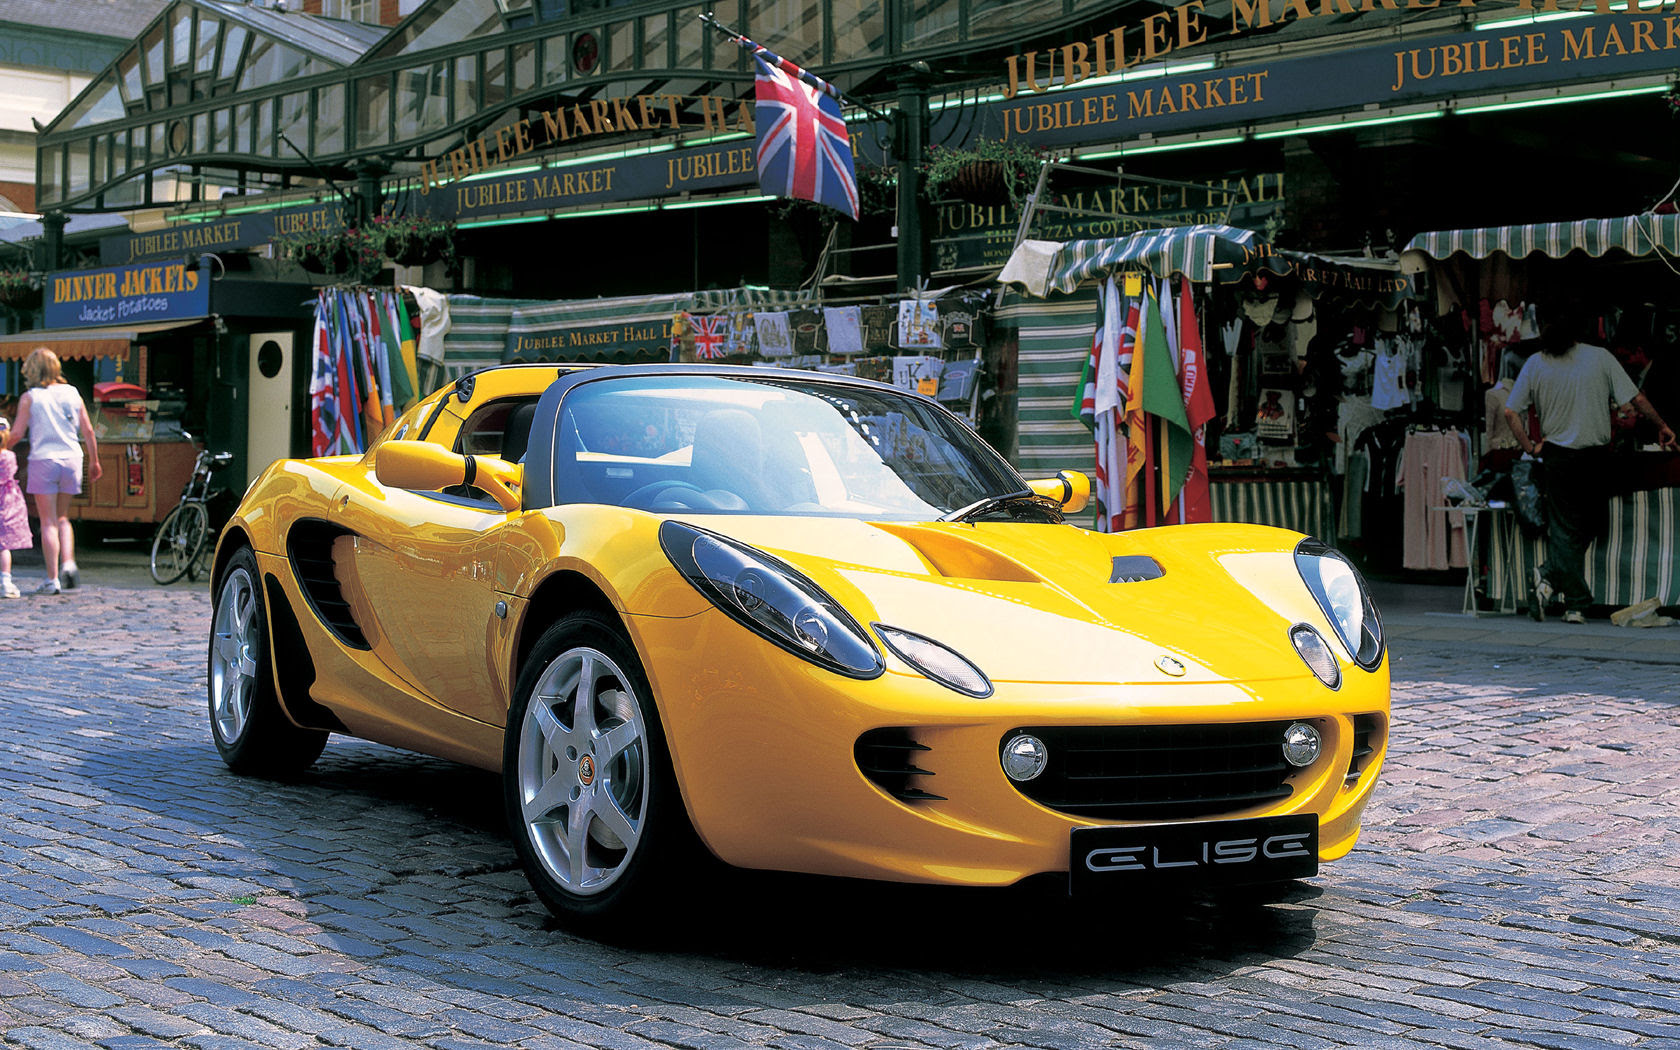 100 Ideas Lotus Elise Wallpaper On Www Saws Store Info Images, Photos, Reviews